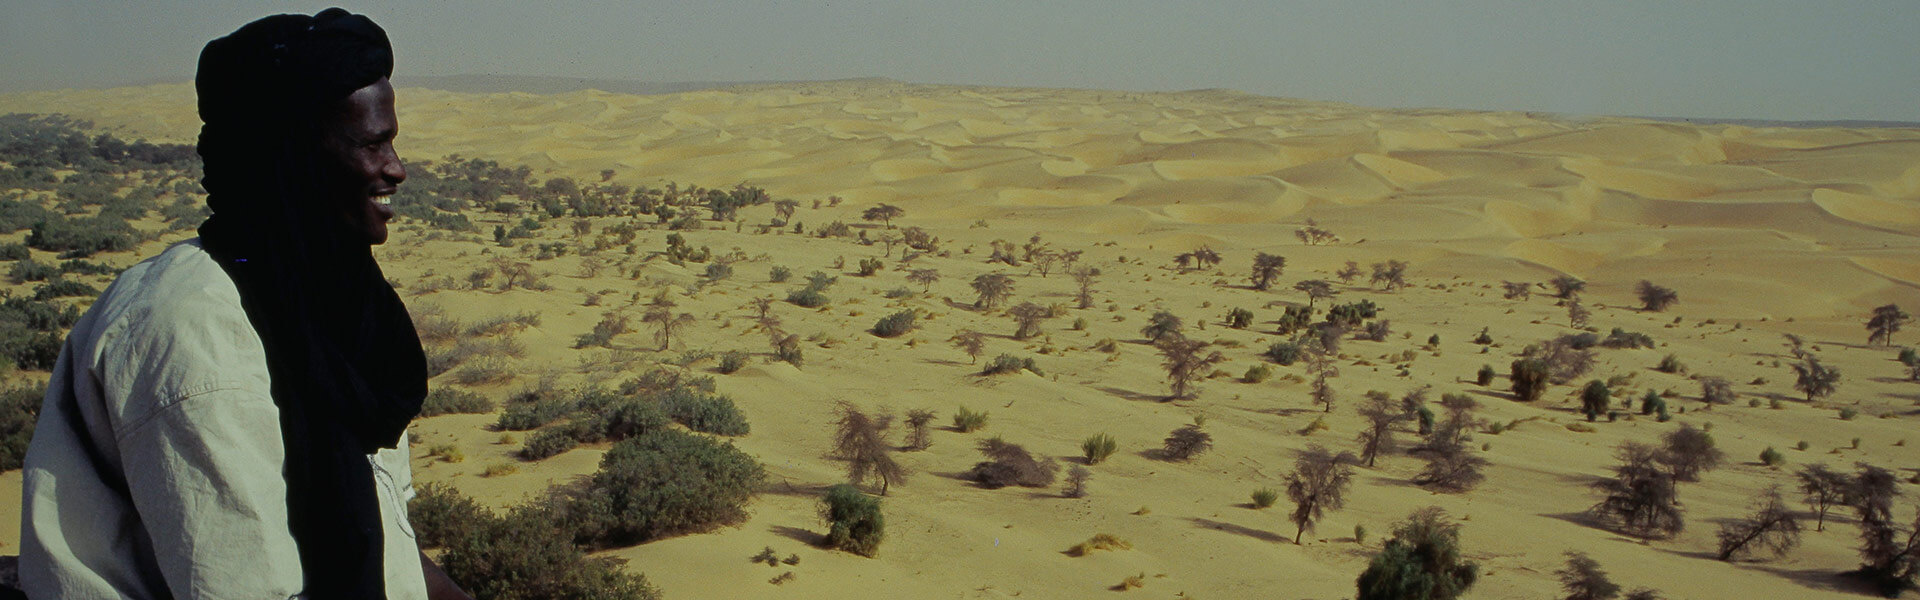 Mauritania overland and good will tours